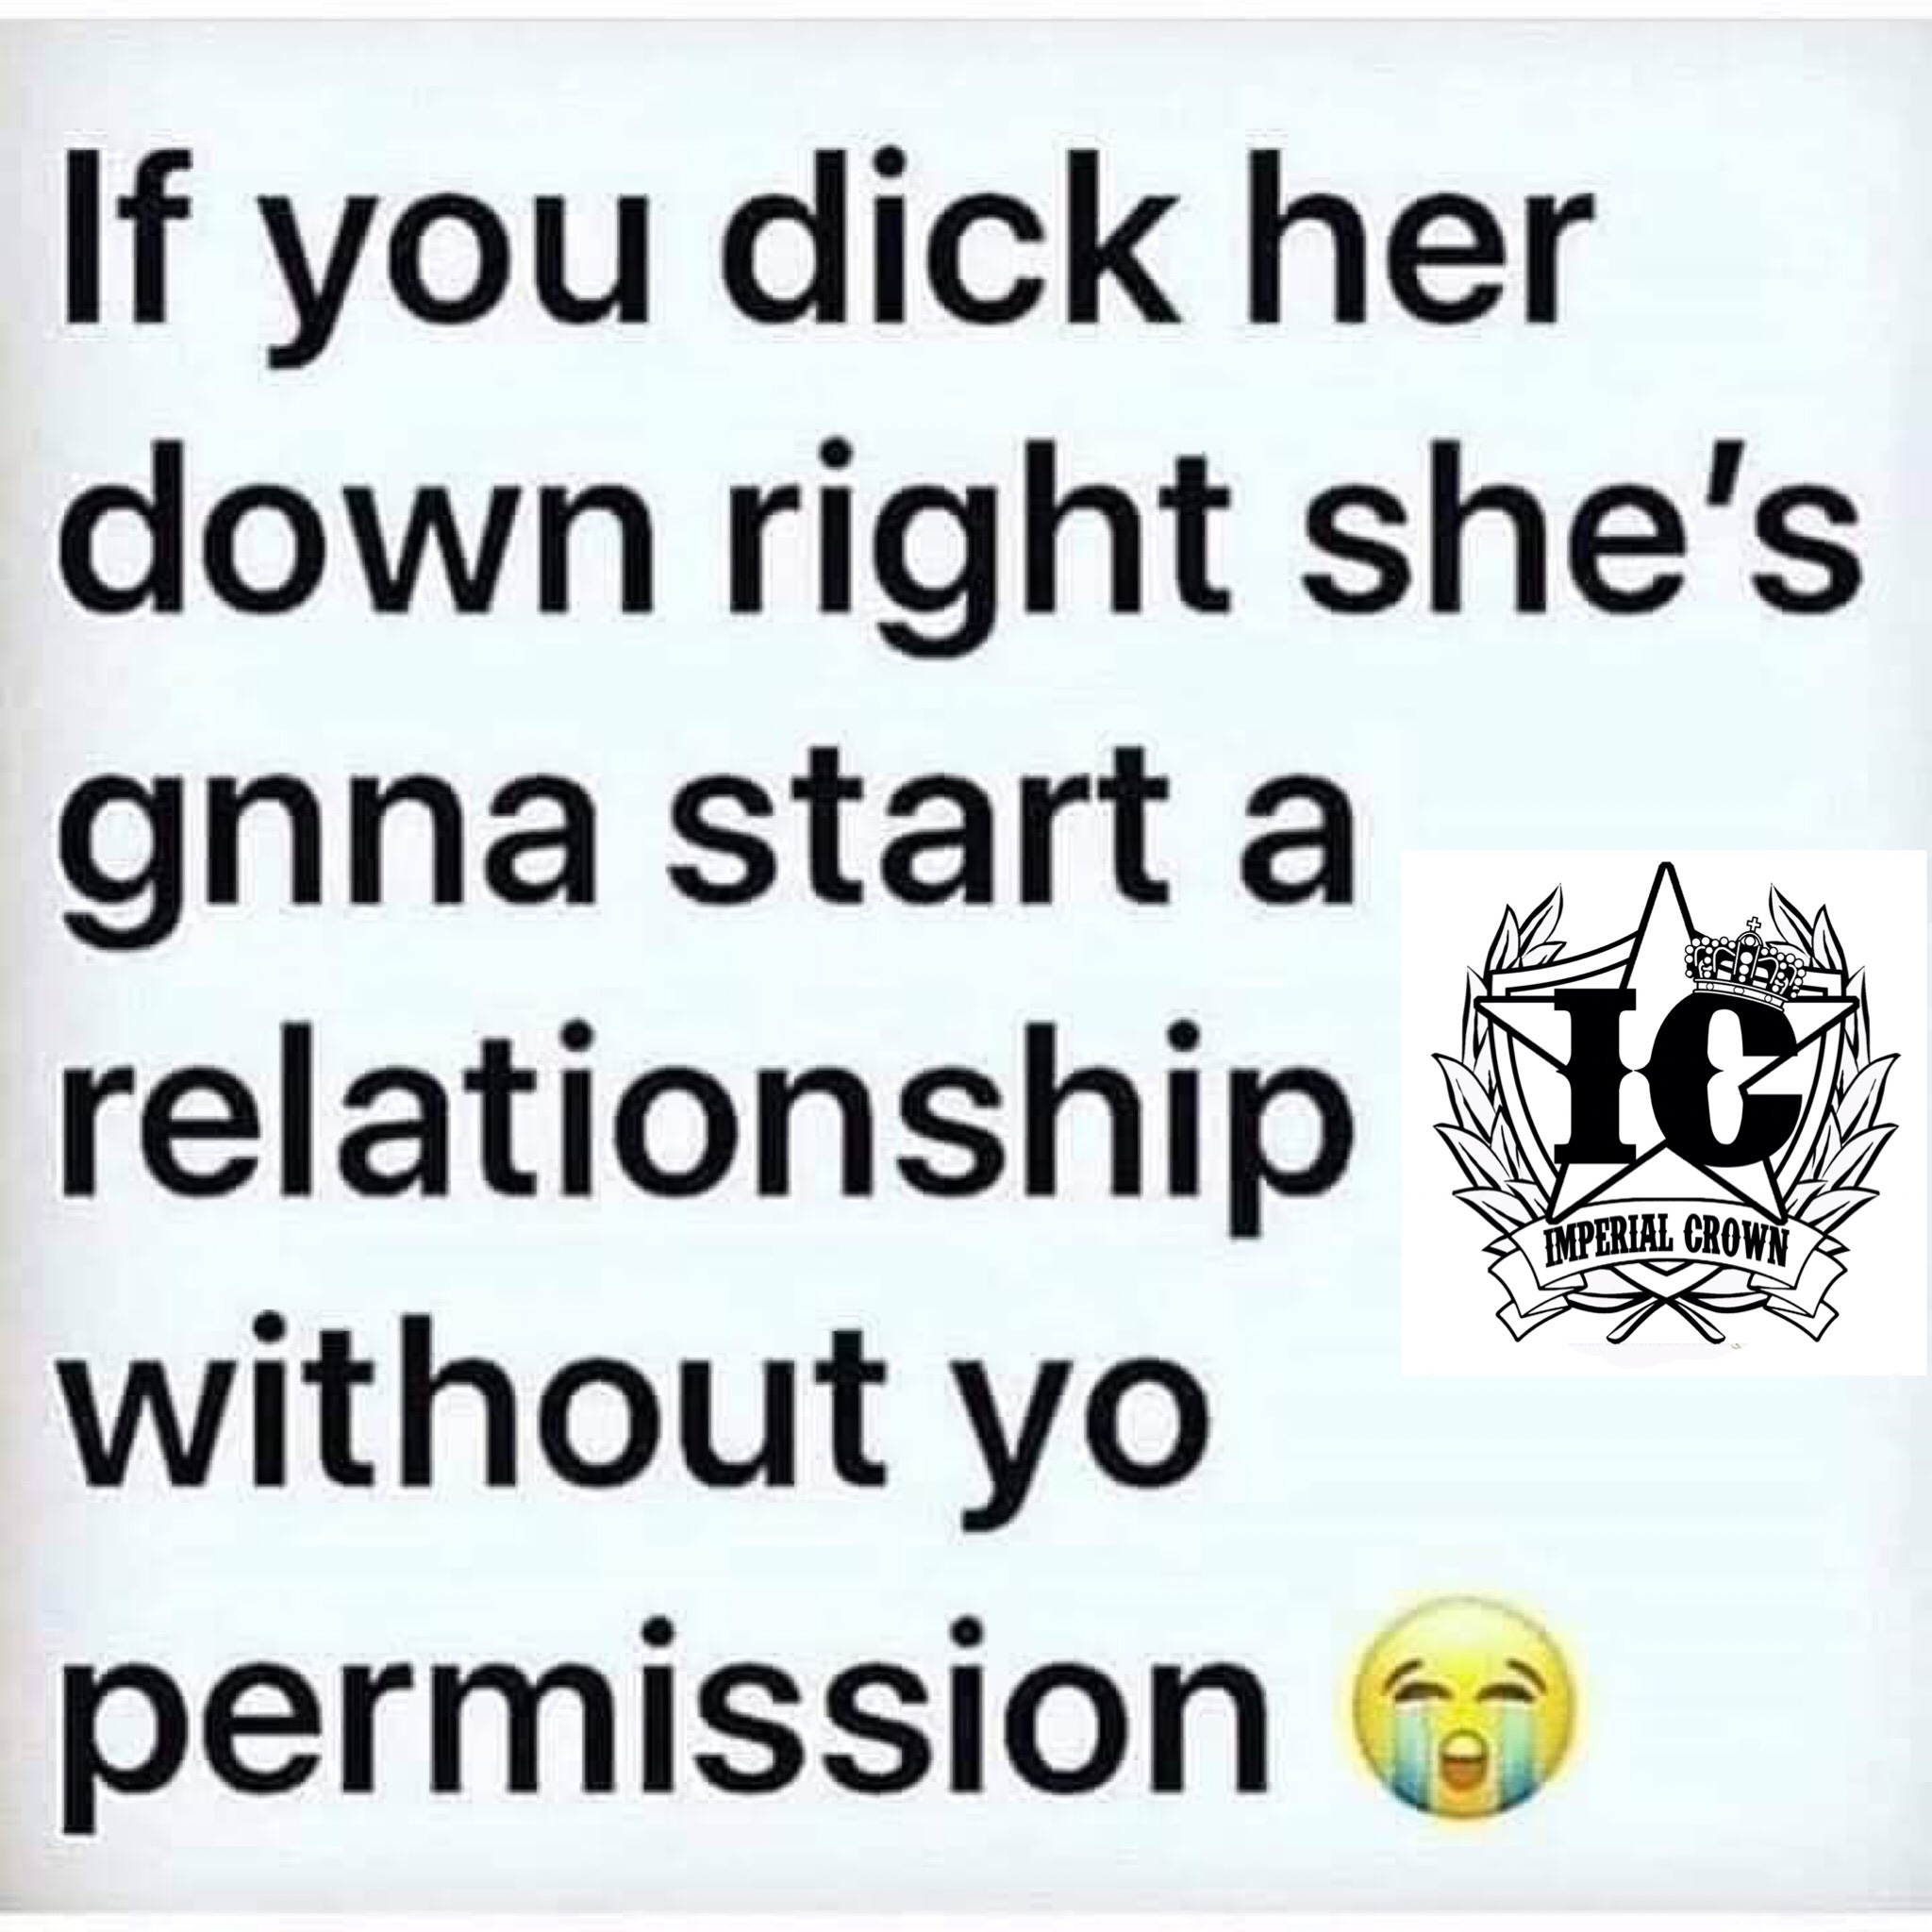 …she's gonna start a relationship with your permission